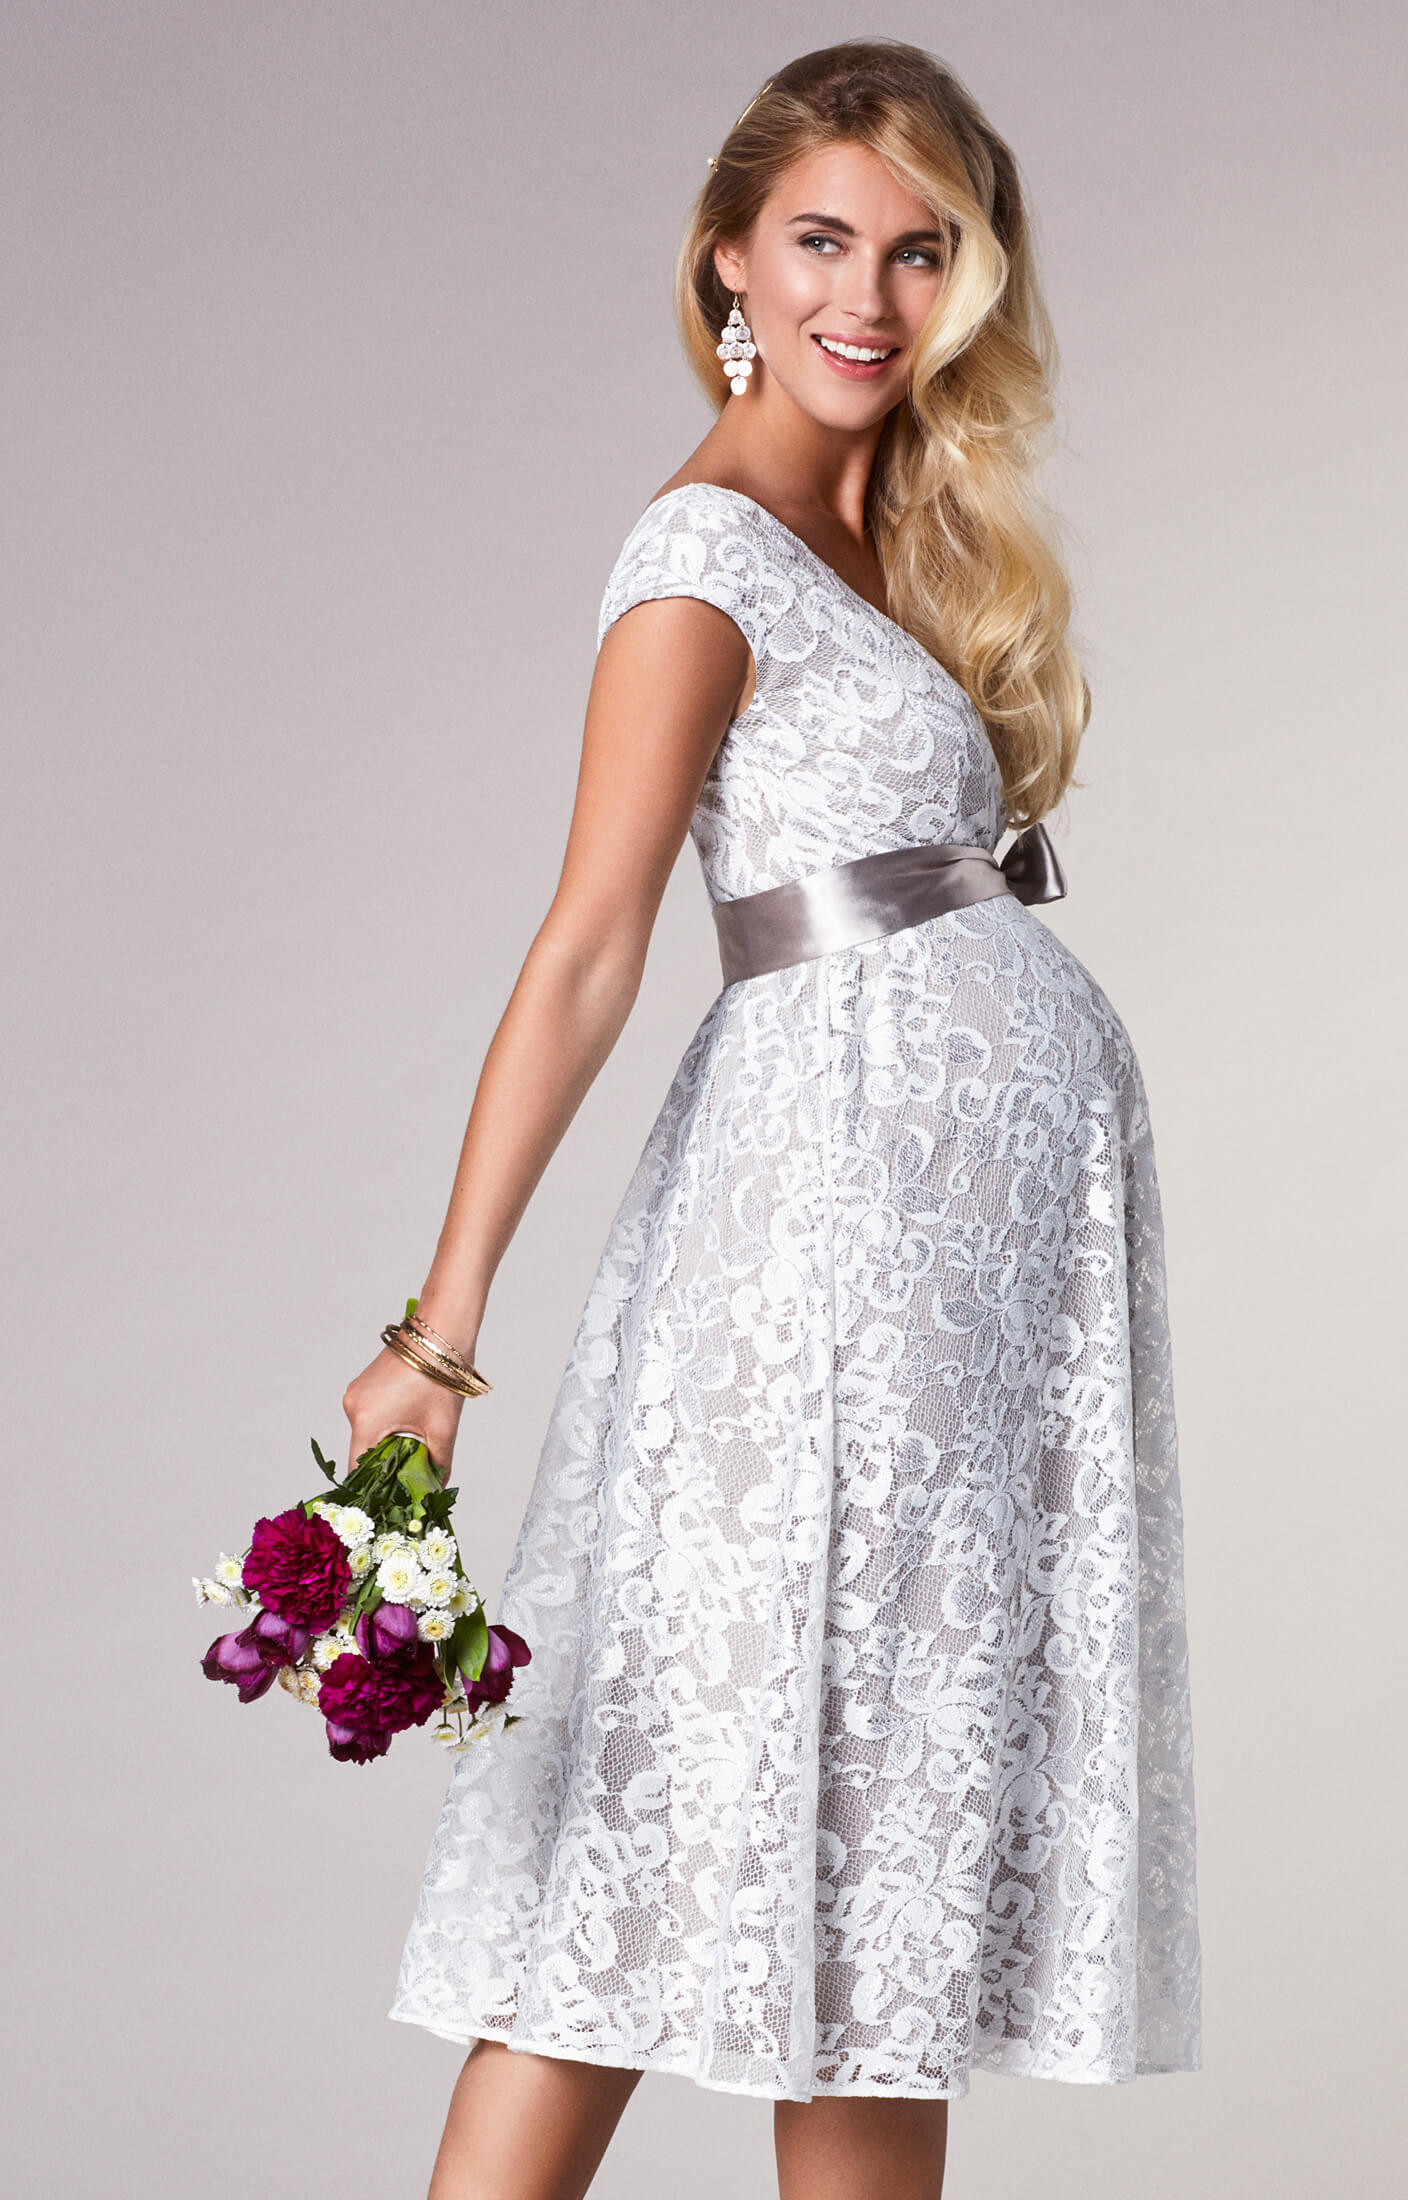 matches. ($ - $) Find great deals on the latest styles of Cream maternity dresses. Compare prices & save money on Women's Dresses.